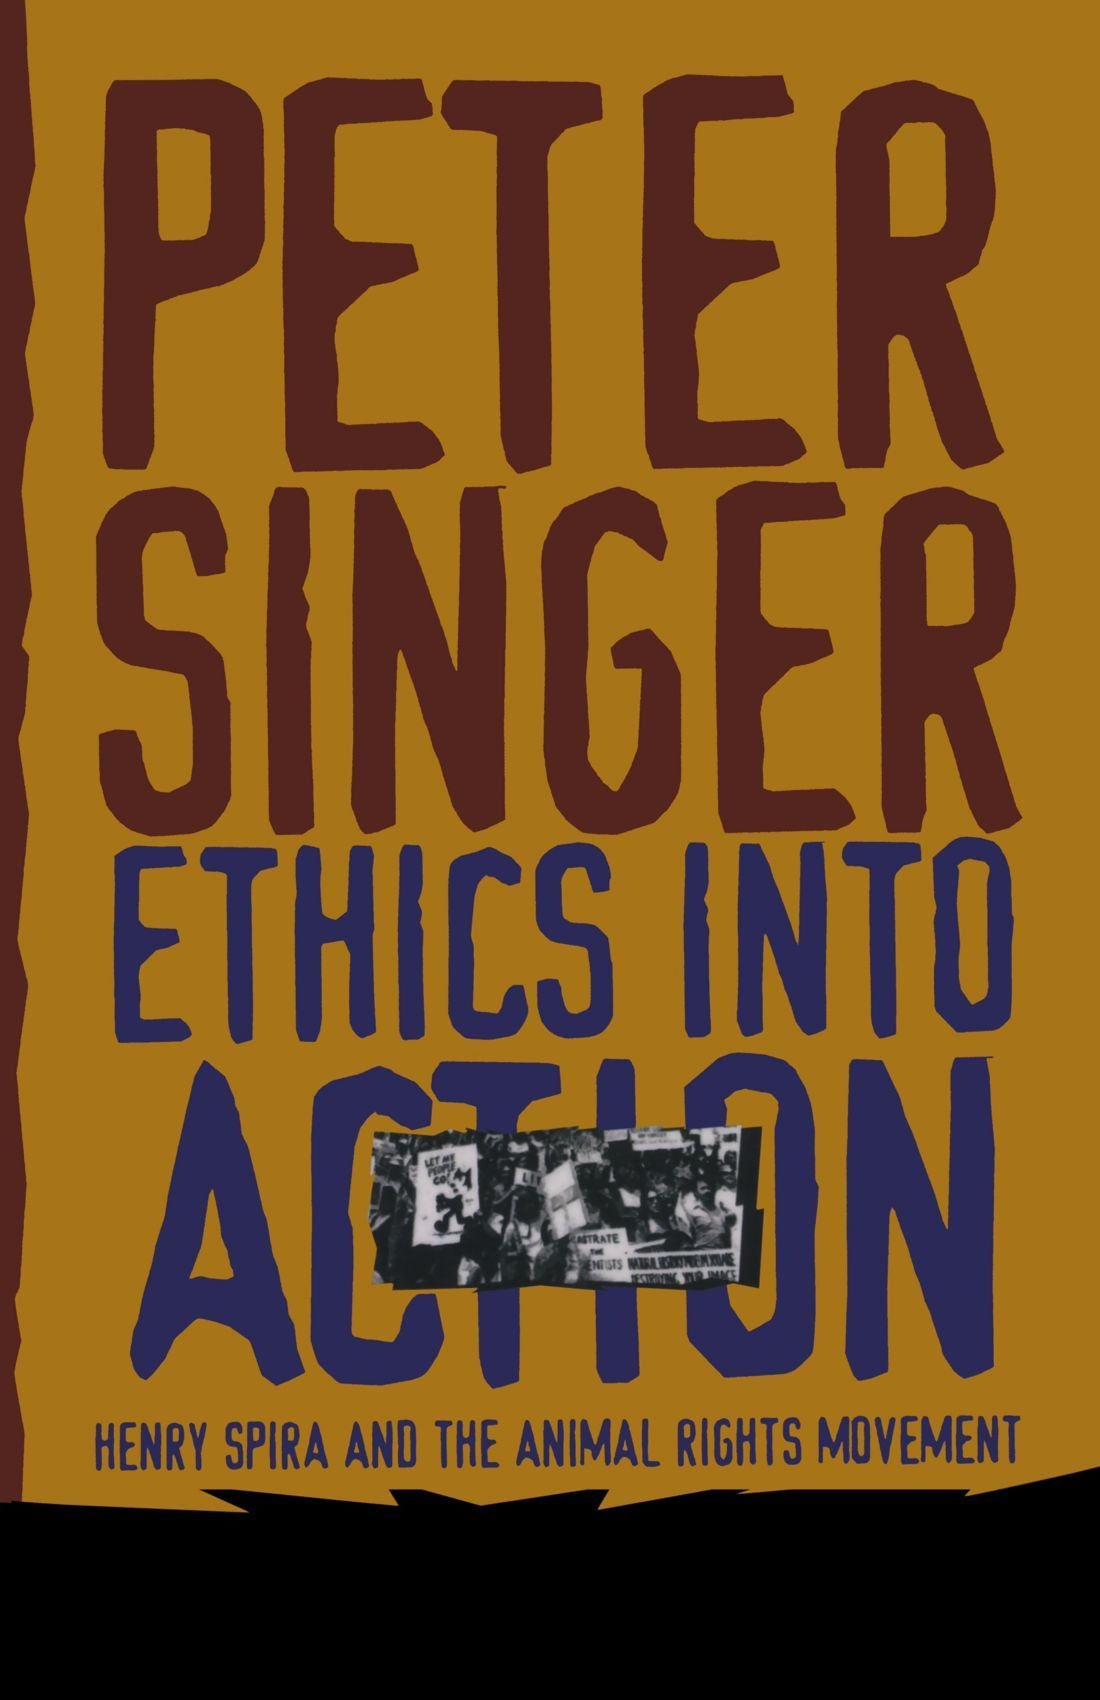 ethics into action henry spira and the animal rights movement ethics into action henry spira and the animal rights movement amazon co uk peter singer 9780847697533 books